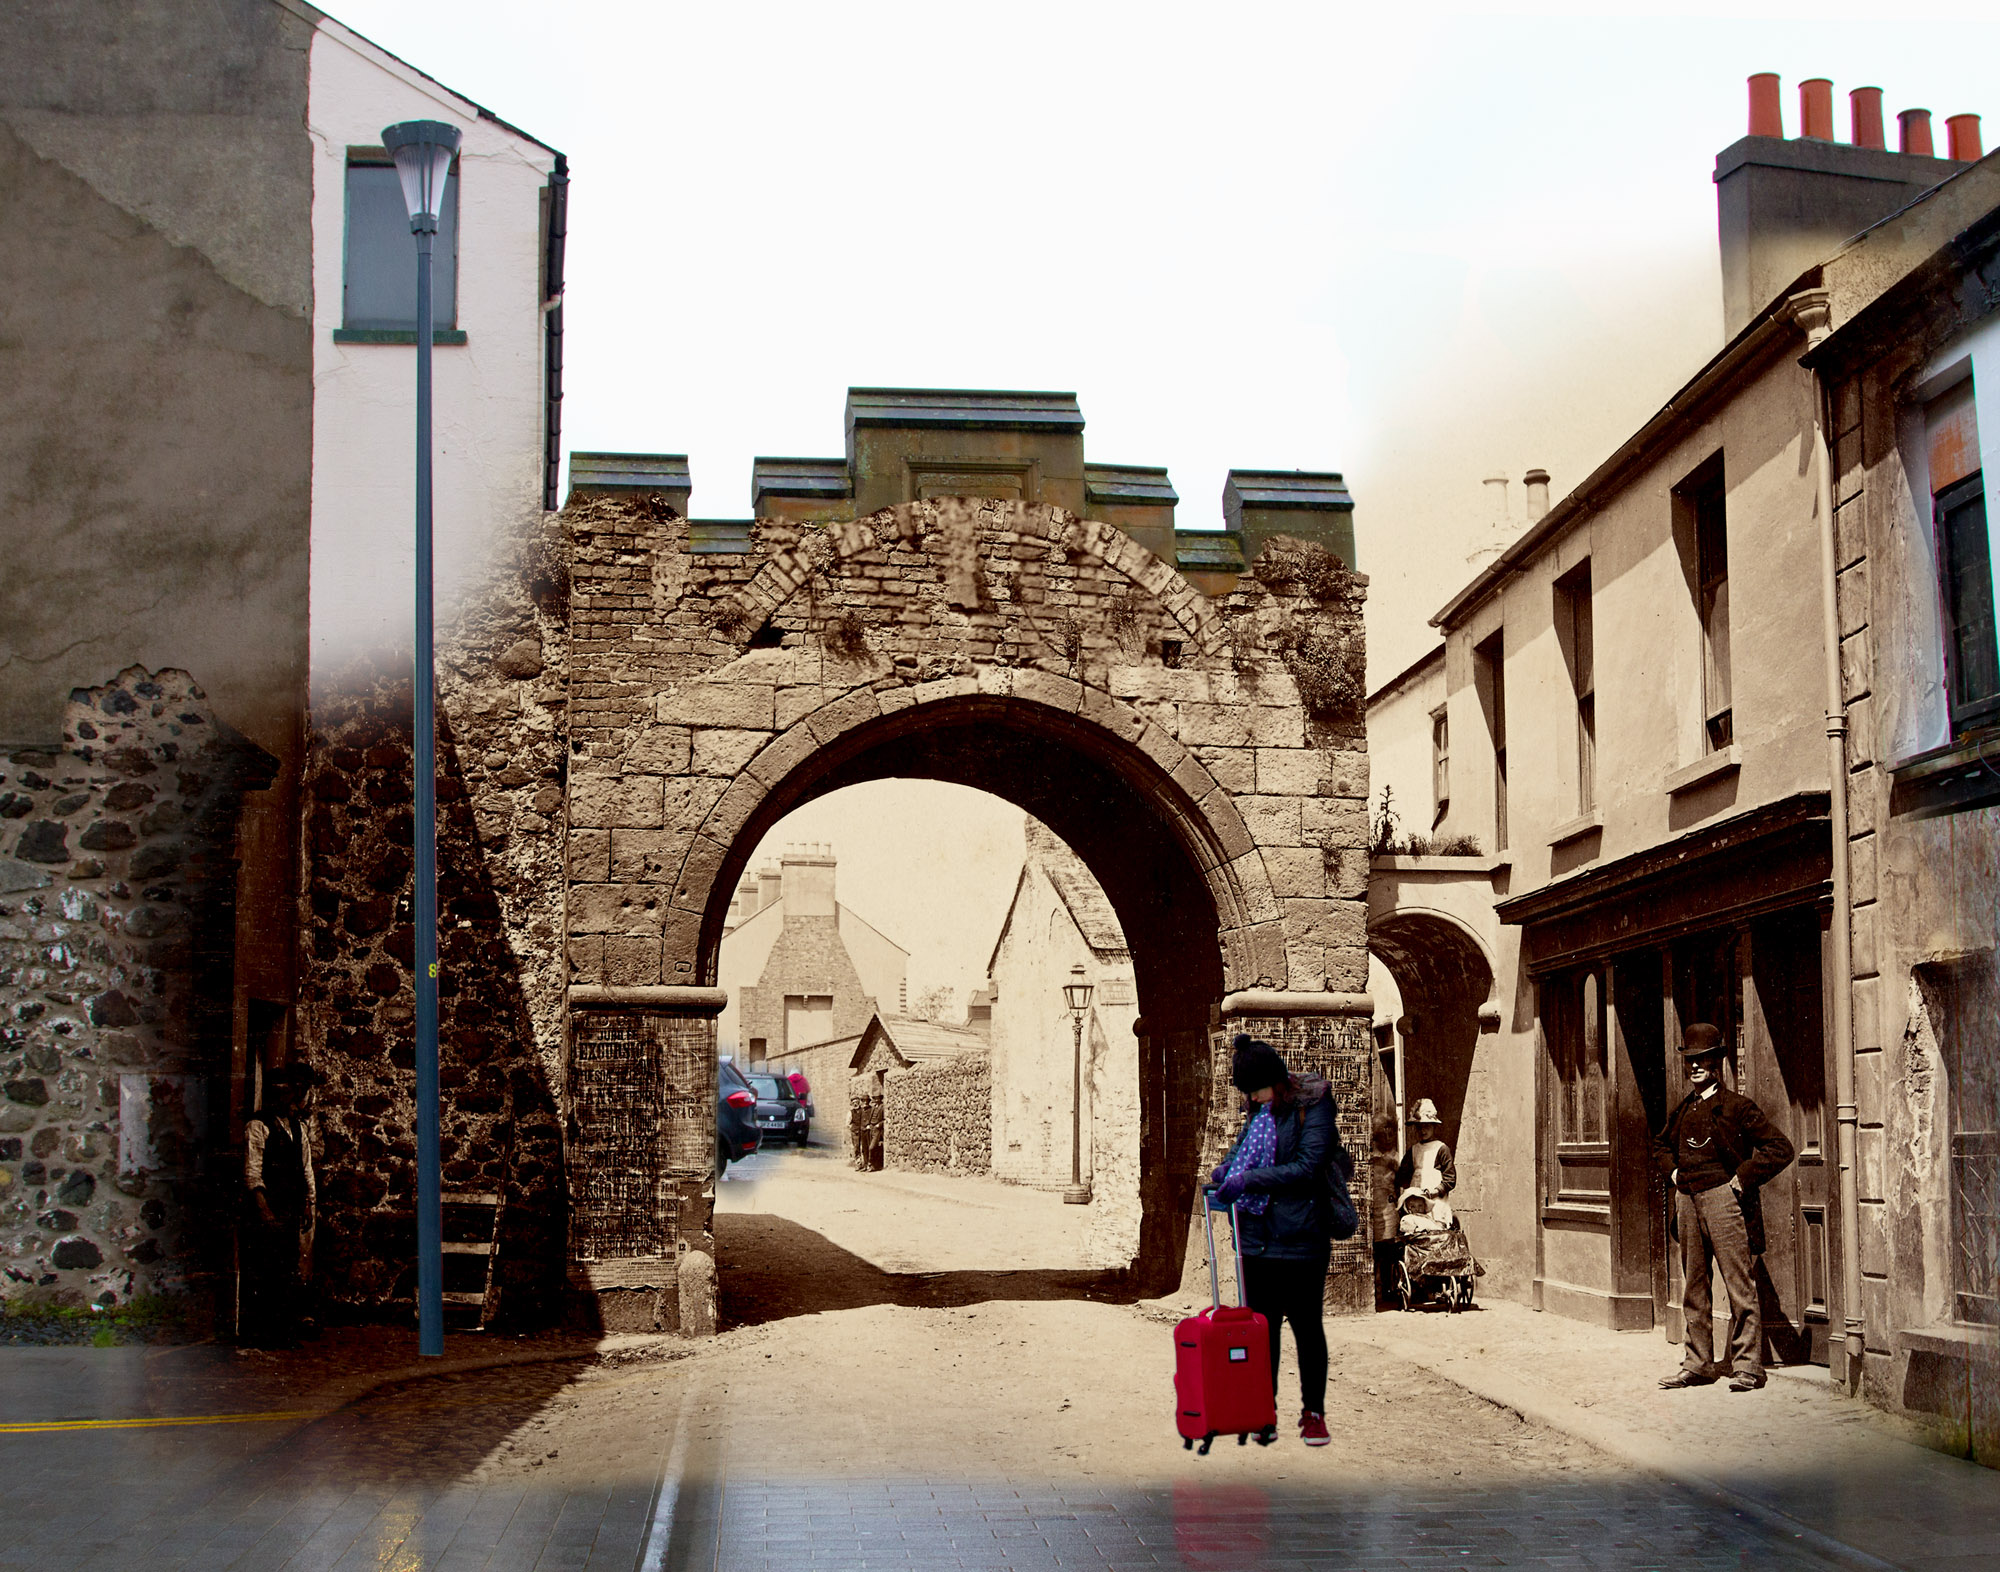 North Gate, Carrickfergus, County Antrim